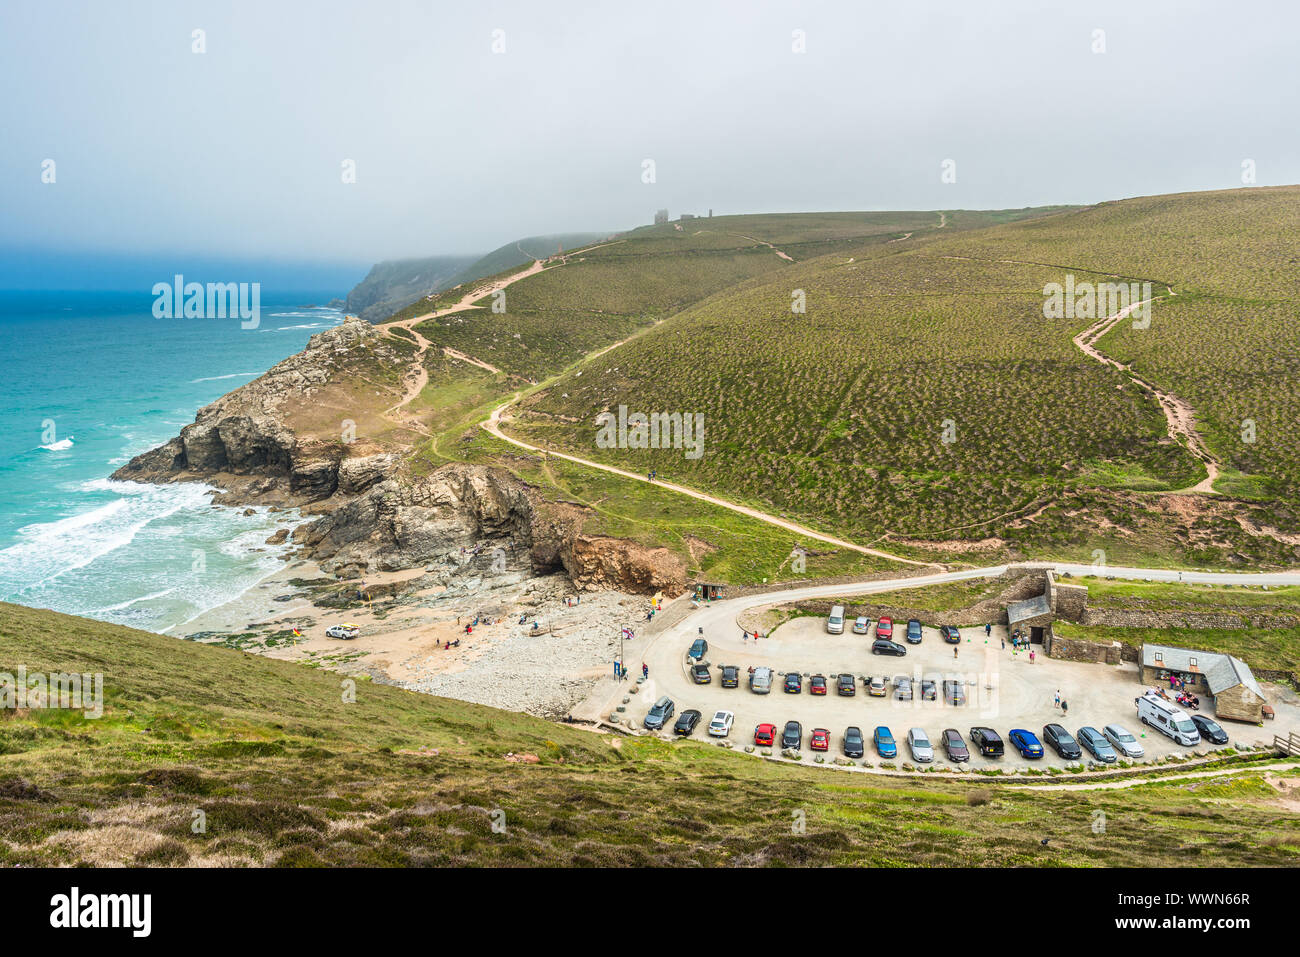 Stunning coastal scenery at Chapel Porth on the St Agnes Heritage coast in Cornwall, England, UK. Stock Photo